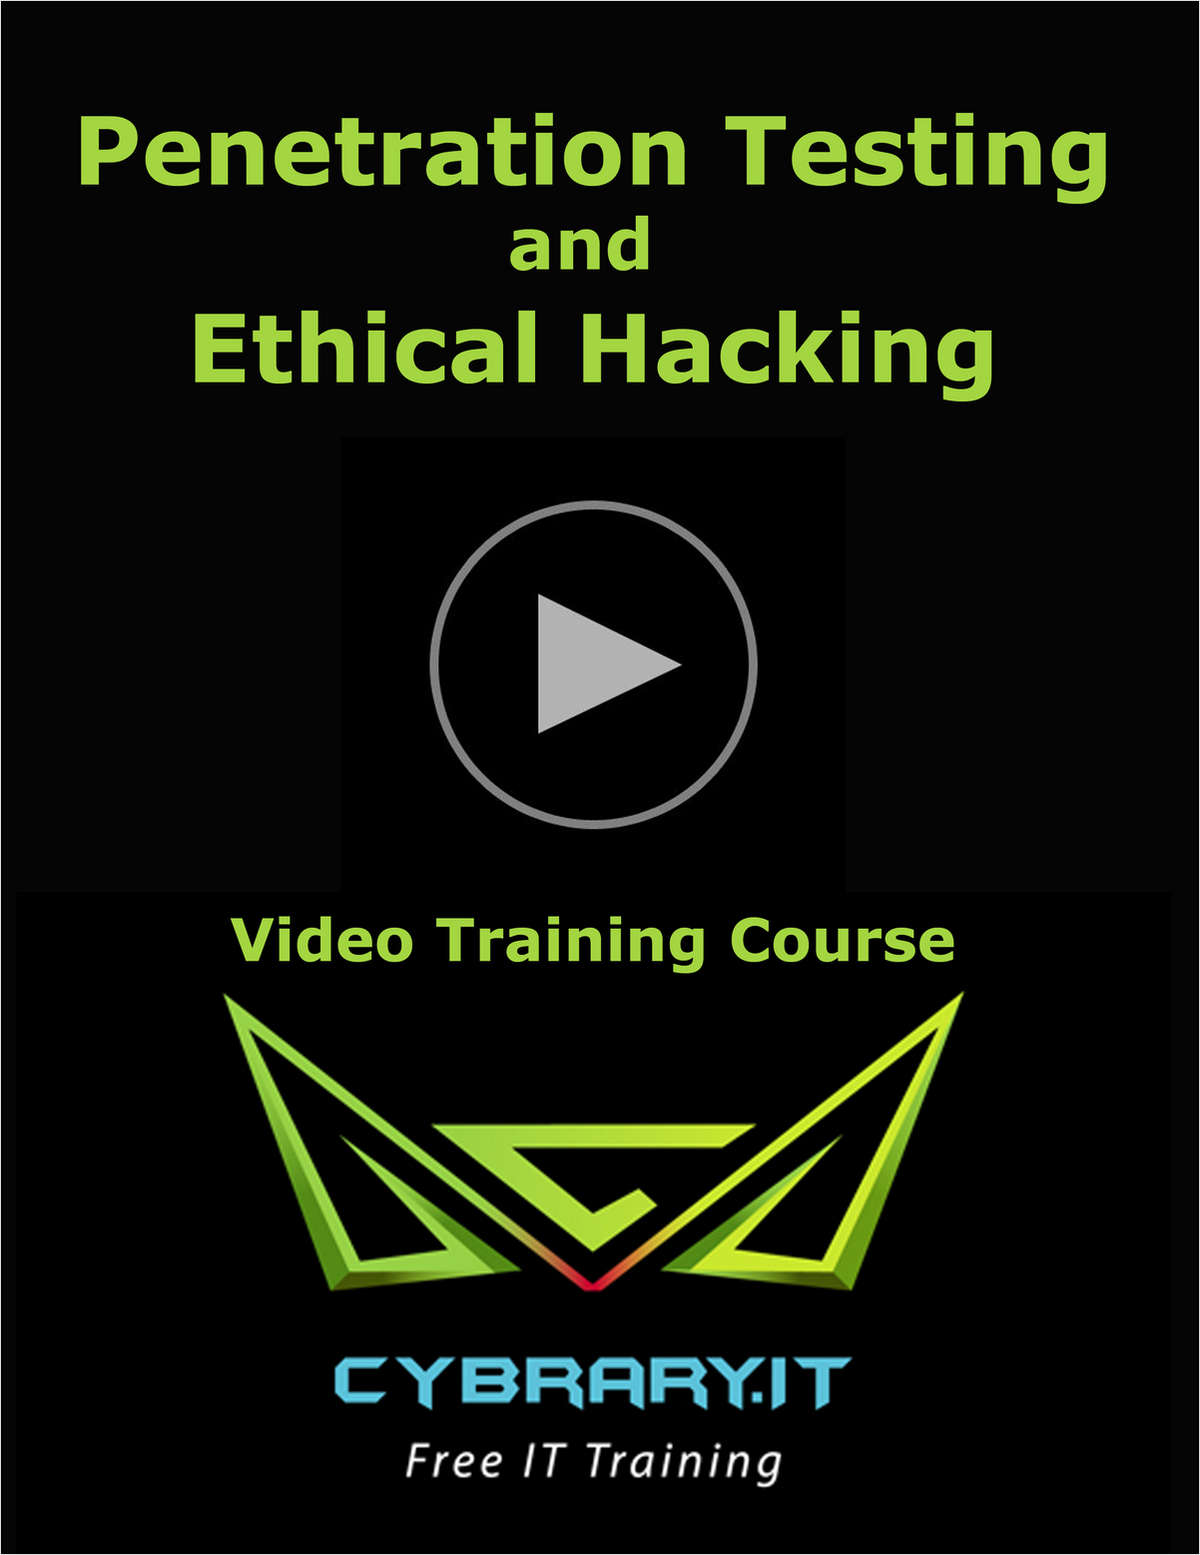 Online Penetration Testing and Ethical Hacking - FREE Video Training Course